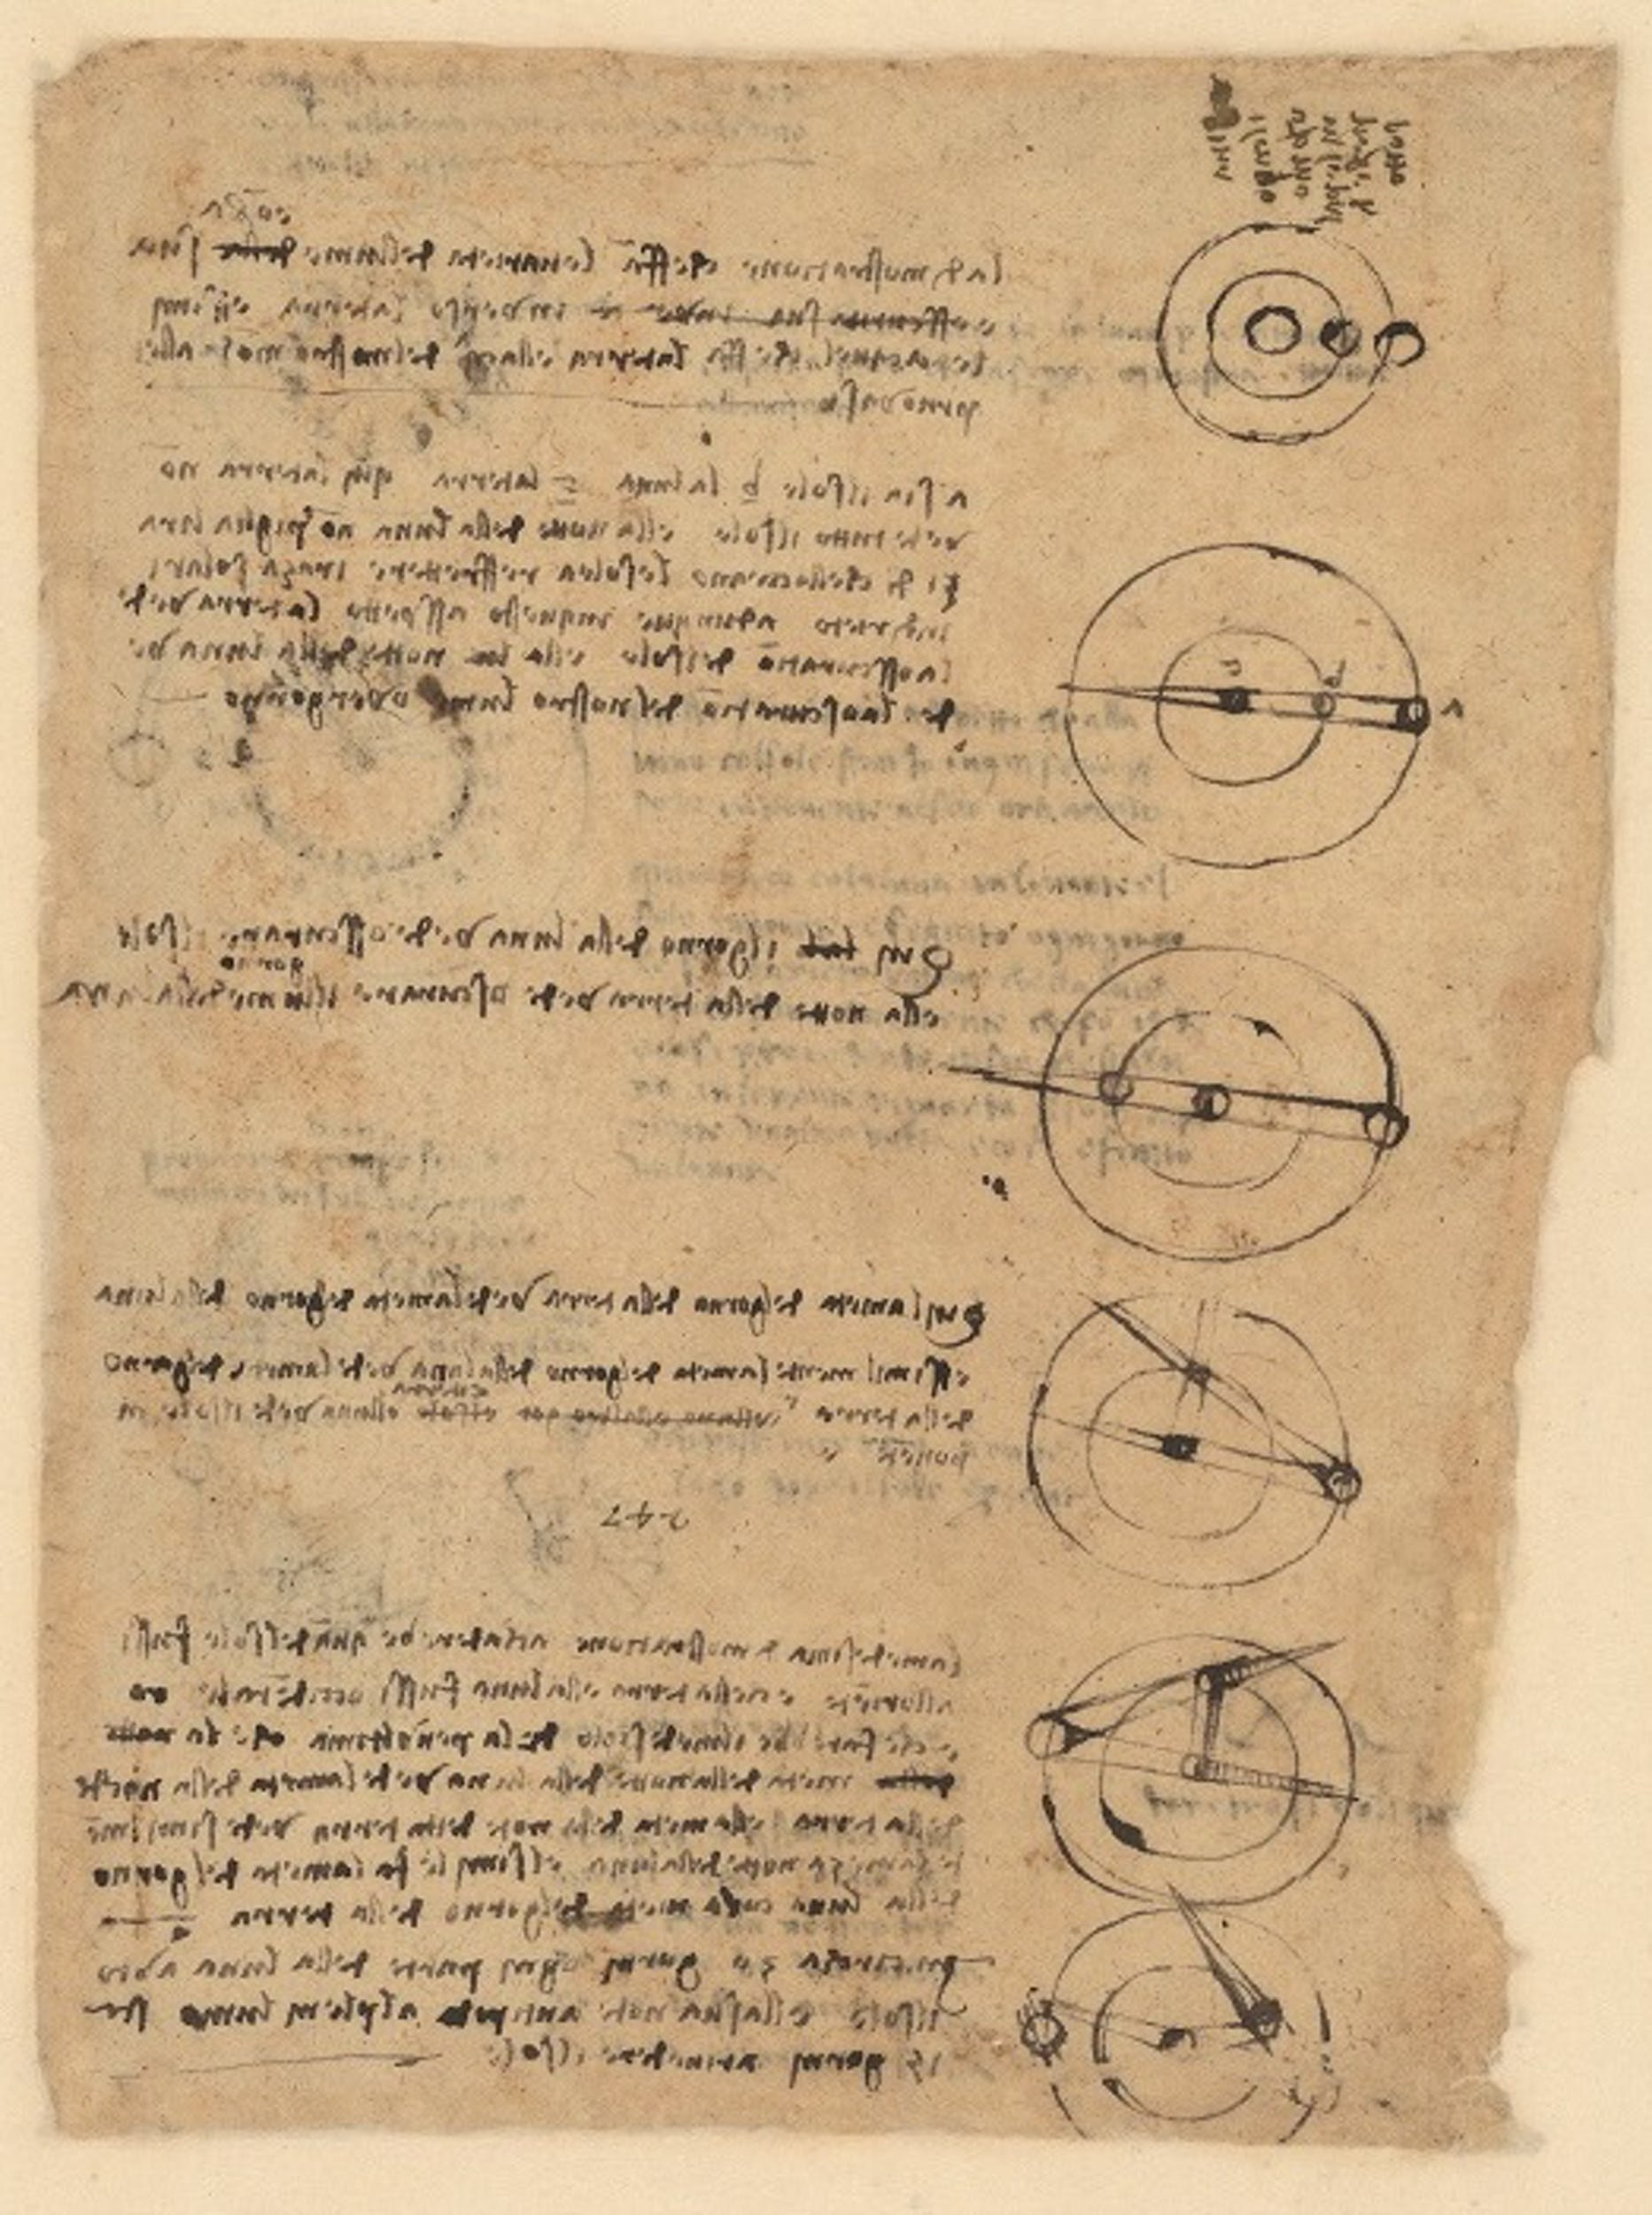 Leonardo da Vinci Sei diagrammi di Terra, Luna e Sole 1513 circa penna e inchiostro, carta bianca a impasto grezzo Codice Atlantico, f. 554v Biblioteca Ambrosiana, Milano I Leonardo da Vinci Six diagrams of Earth, Moon and Sun  1513 circa pen and ink, raw white paper Codex Atlanticus, f. 554v Veneranda Biblioteca e Pinacoteca Ambrosiana, Milano